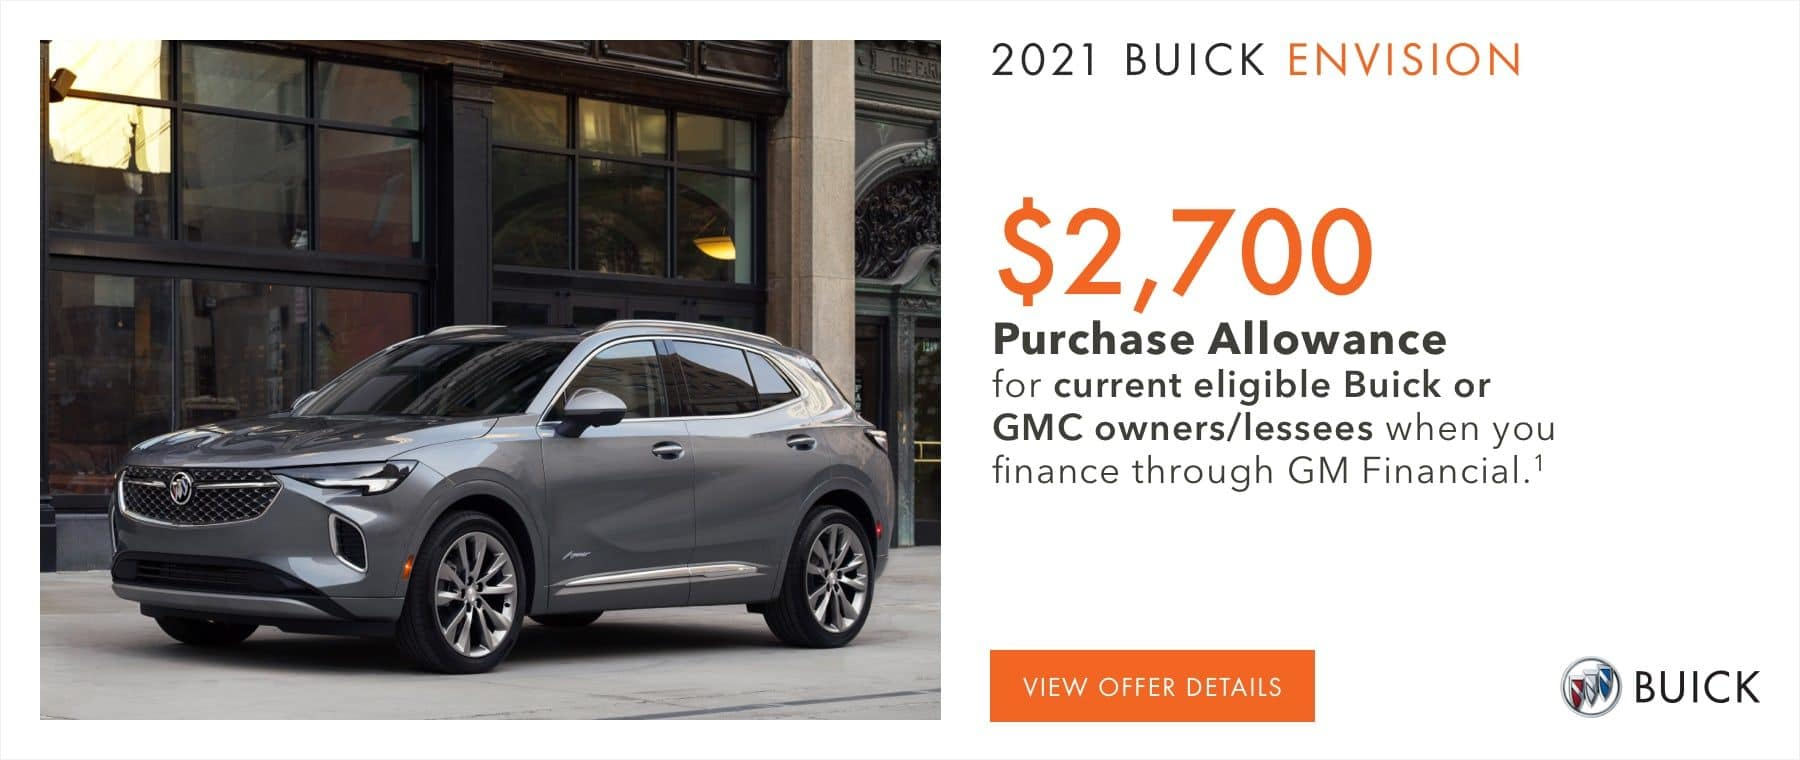 $2,700 Purchase Allowance for current eligible Buick or GMC owners/lessees when you finance through GM Financial.1